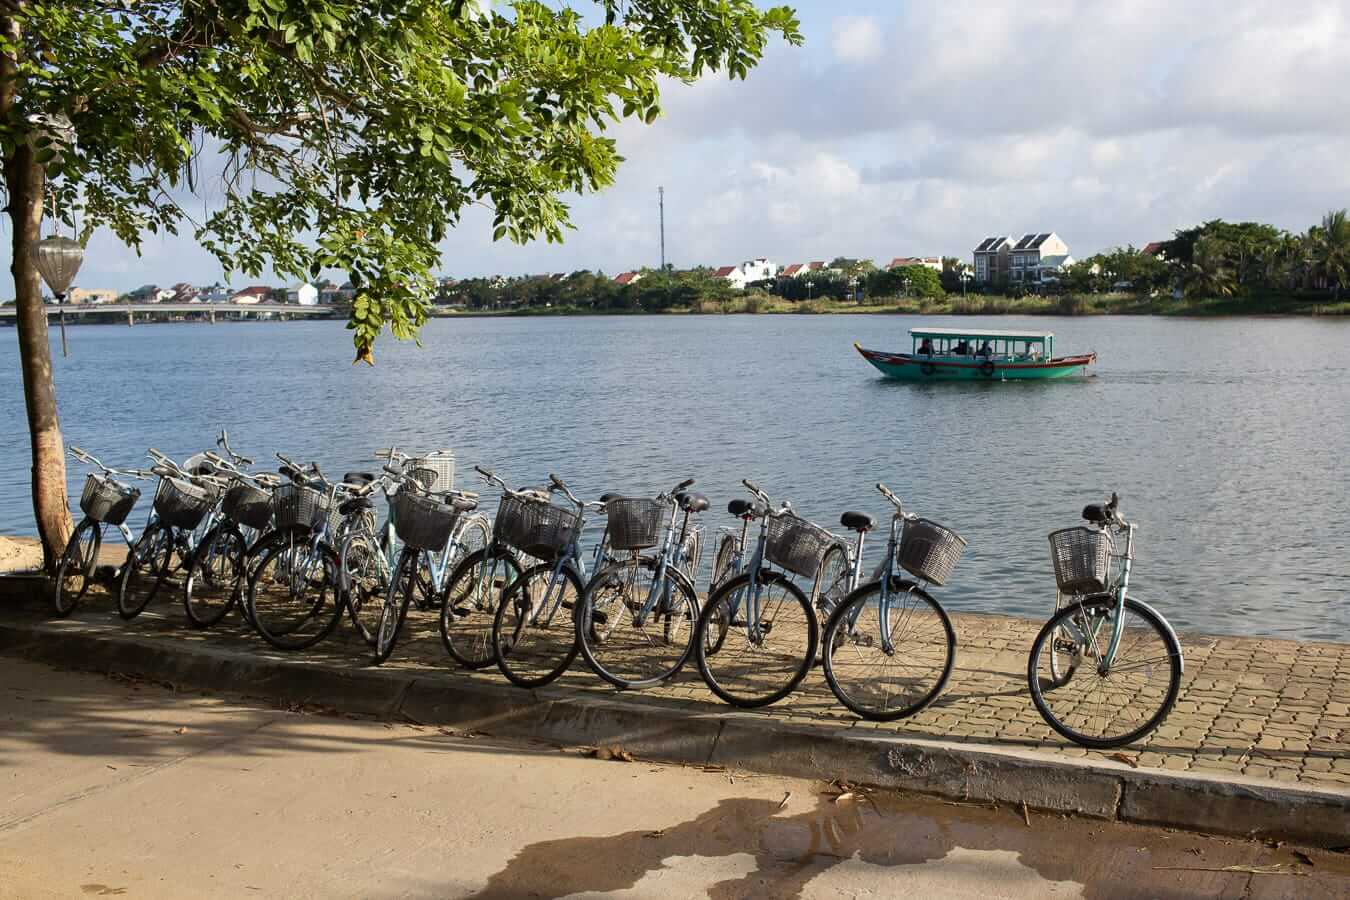 Parked bikes: Hoi An cycling